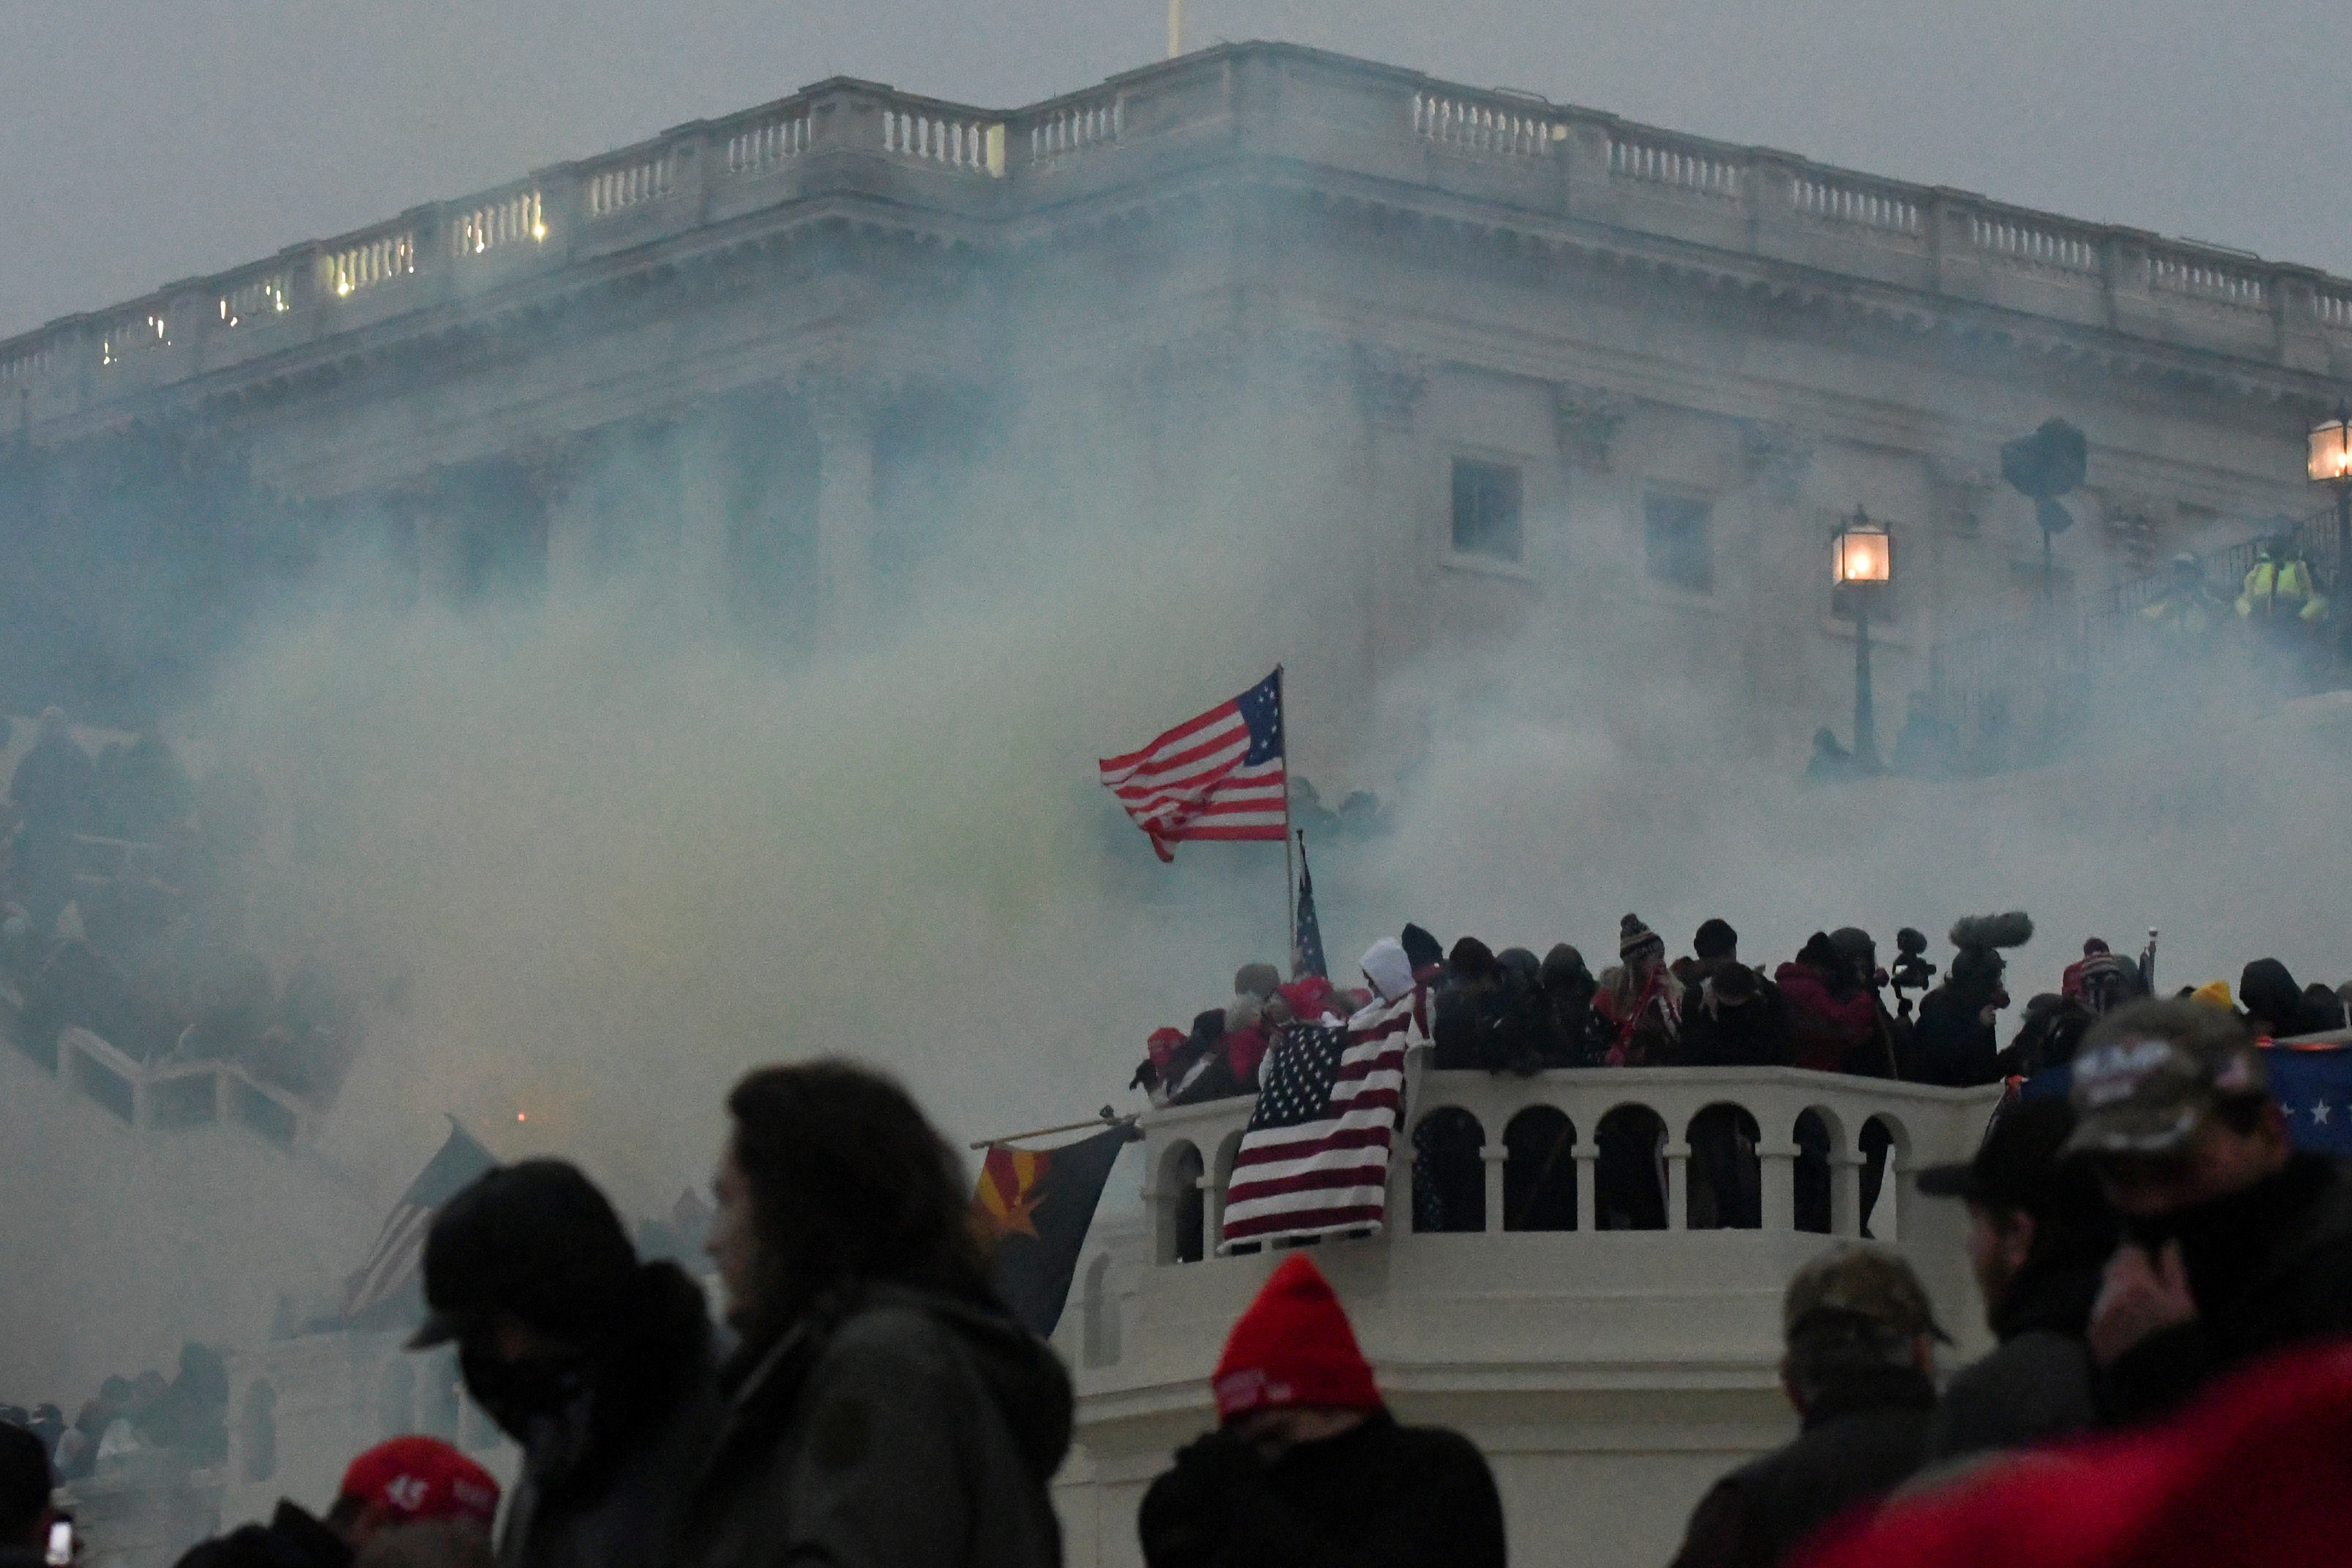 Police clear the U.S. Capitol Building with tear gas as supporters of U.S. President Donald Trump gather outside, in Washington, U.S. January 6, 2021. REUTERS/Stephanie Keith/File Photo